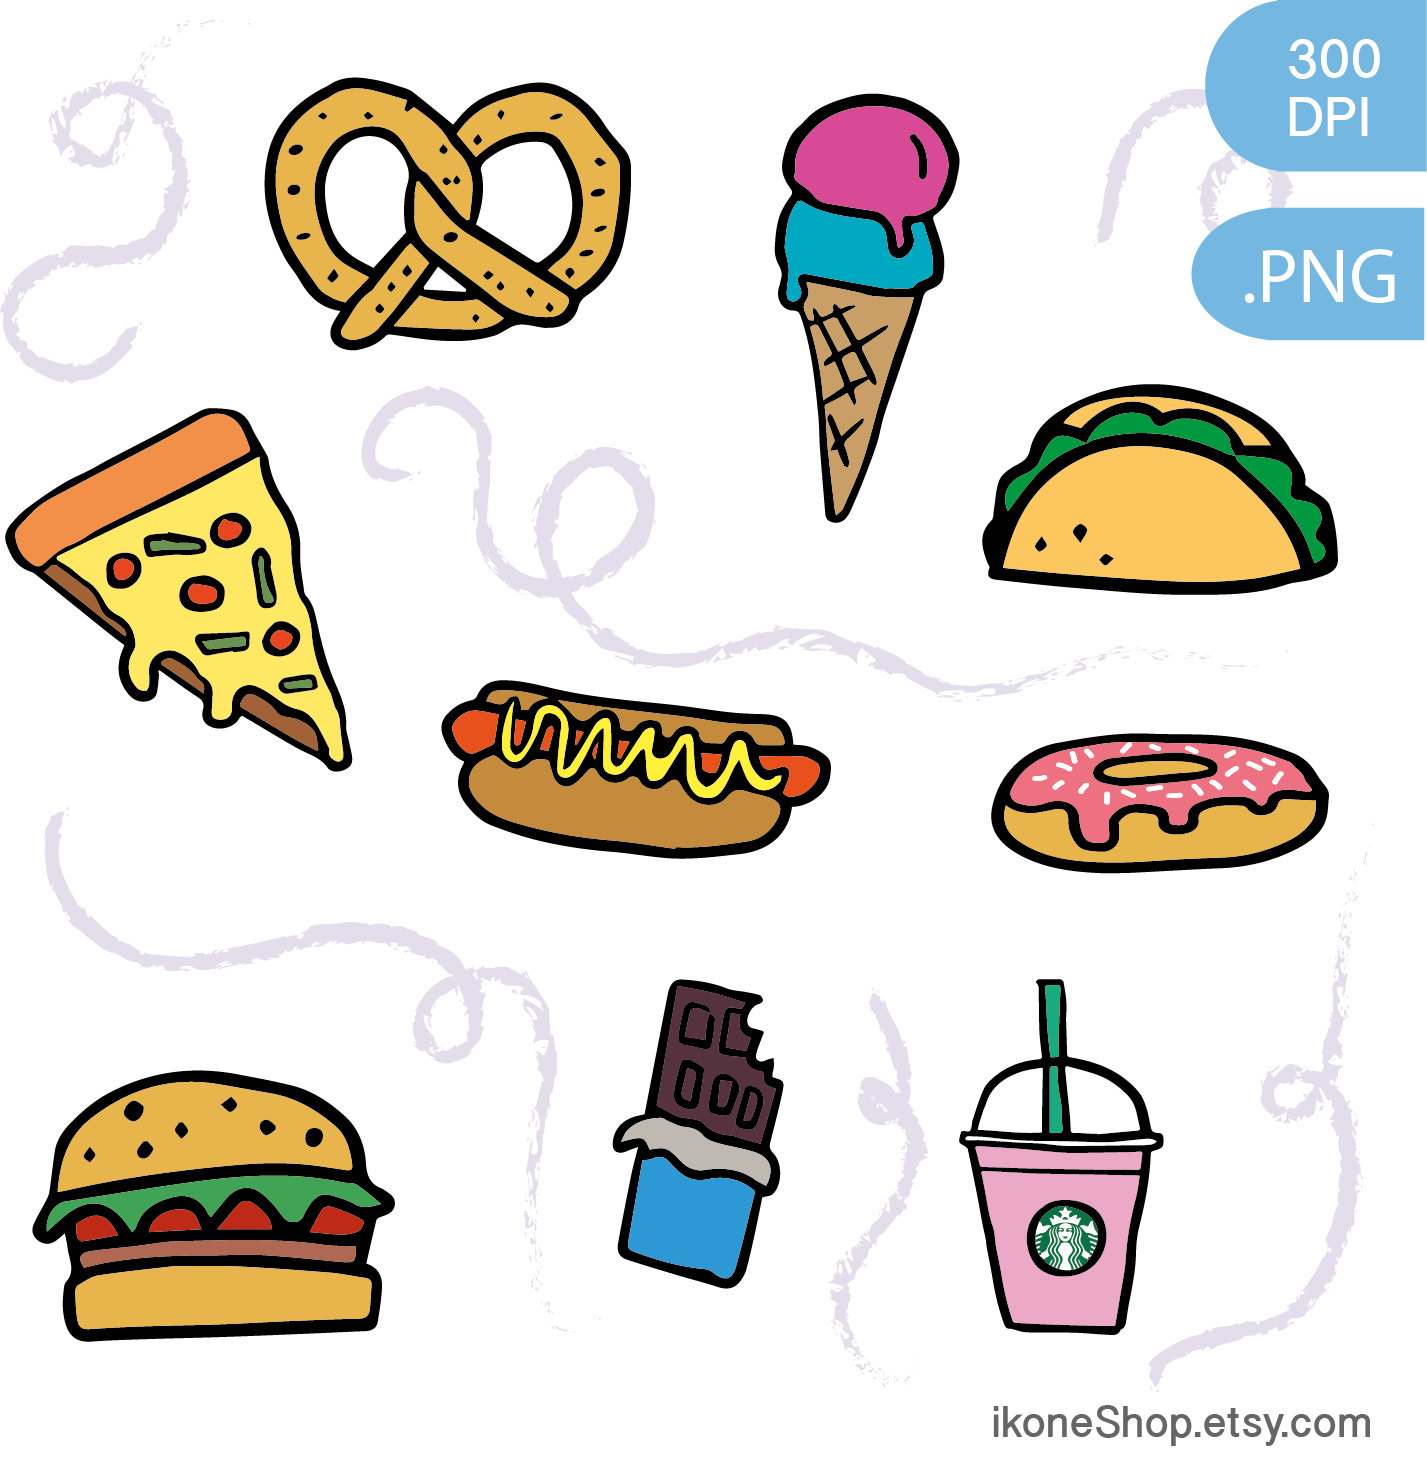 junk food clipart fast food clipart panda free clipart images rh clipartpanda com eating junk food clipart black and white junk food clipart images